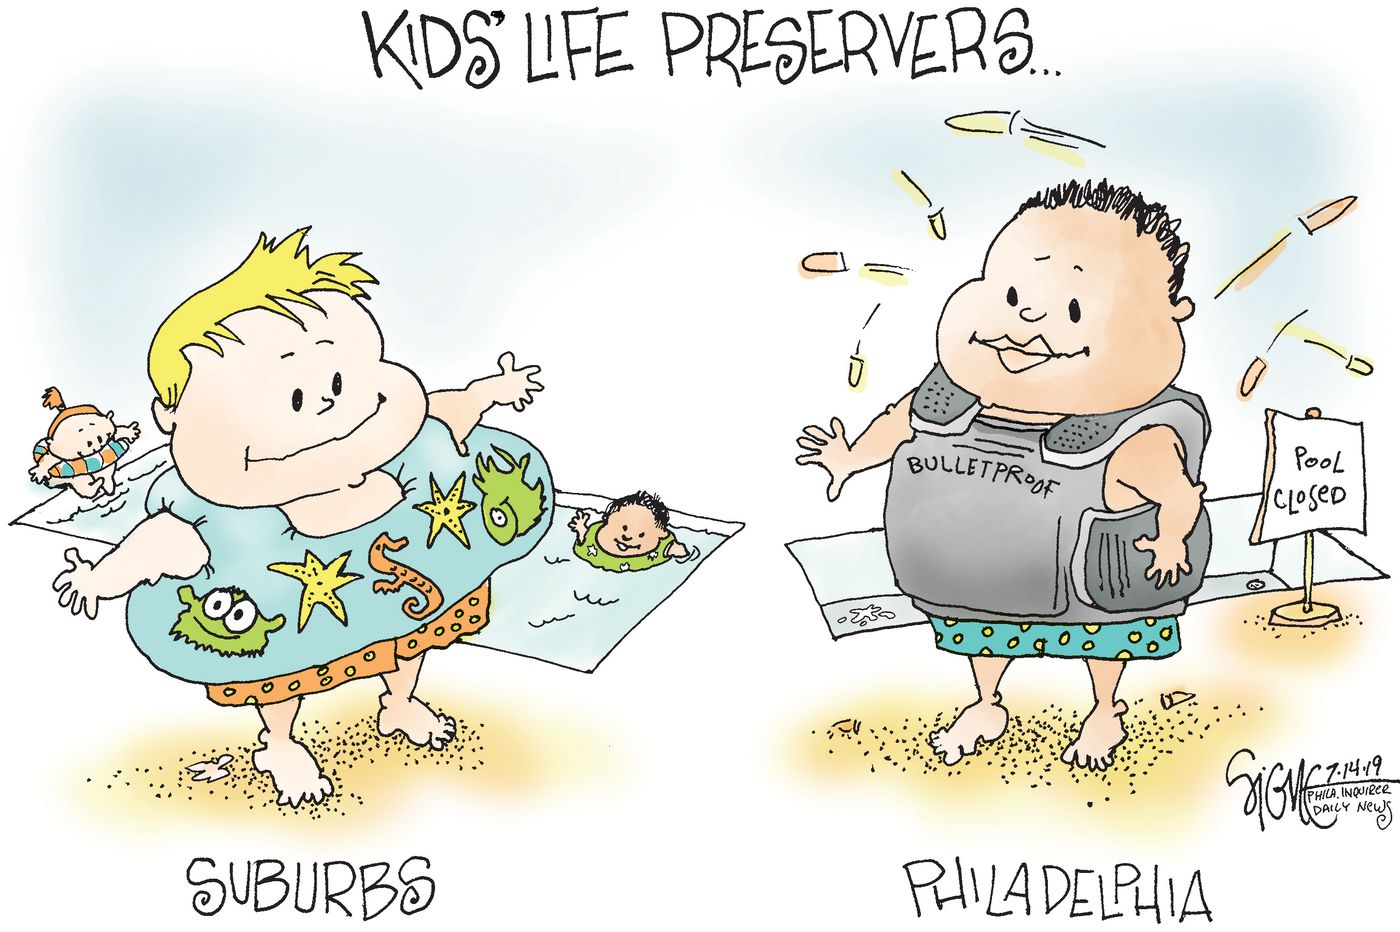 Political Cartoon: Gun violence takes lives and childhoods